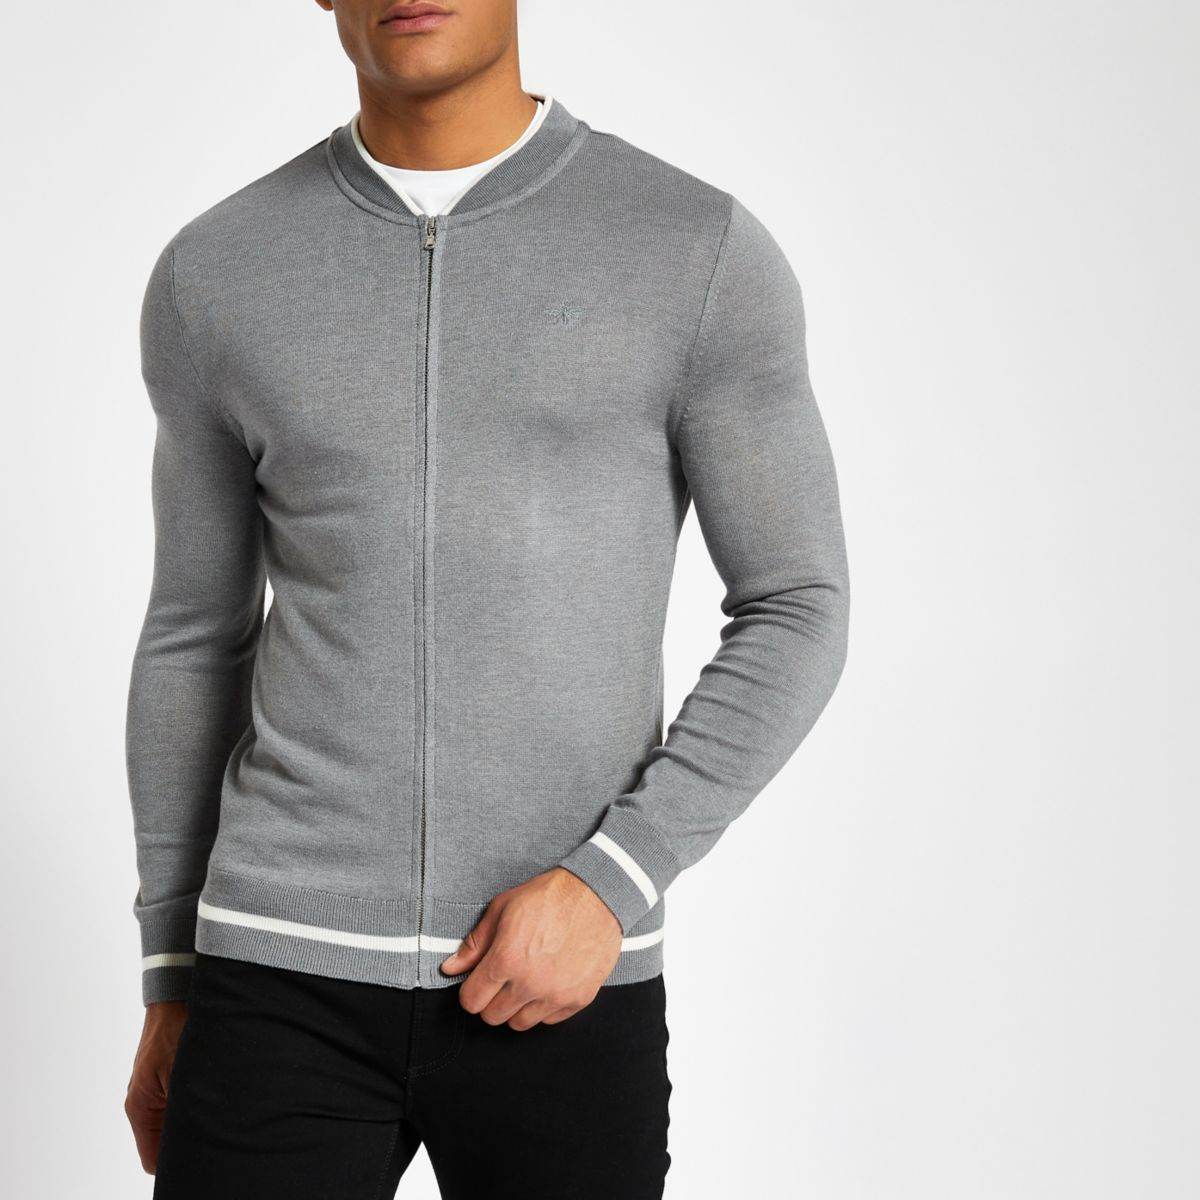 Grey zip front slim fit bomber cardigan